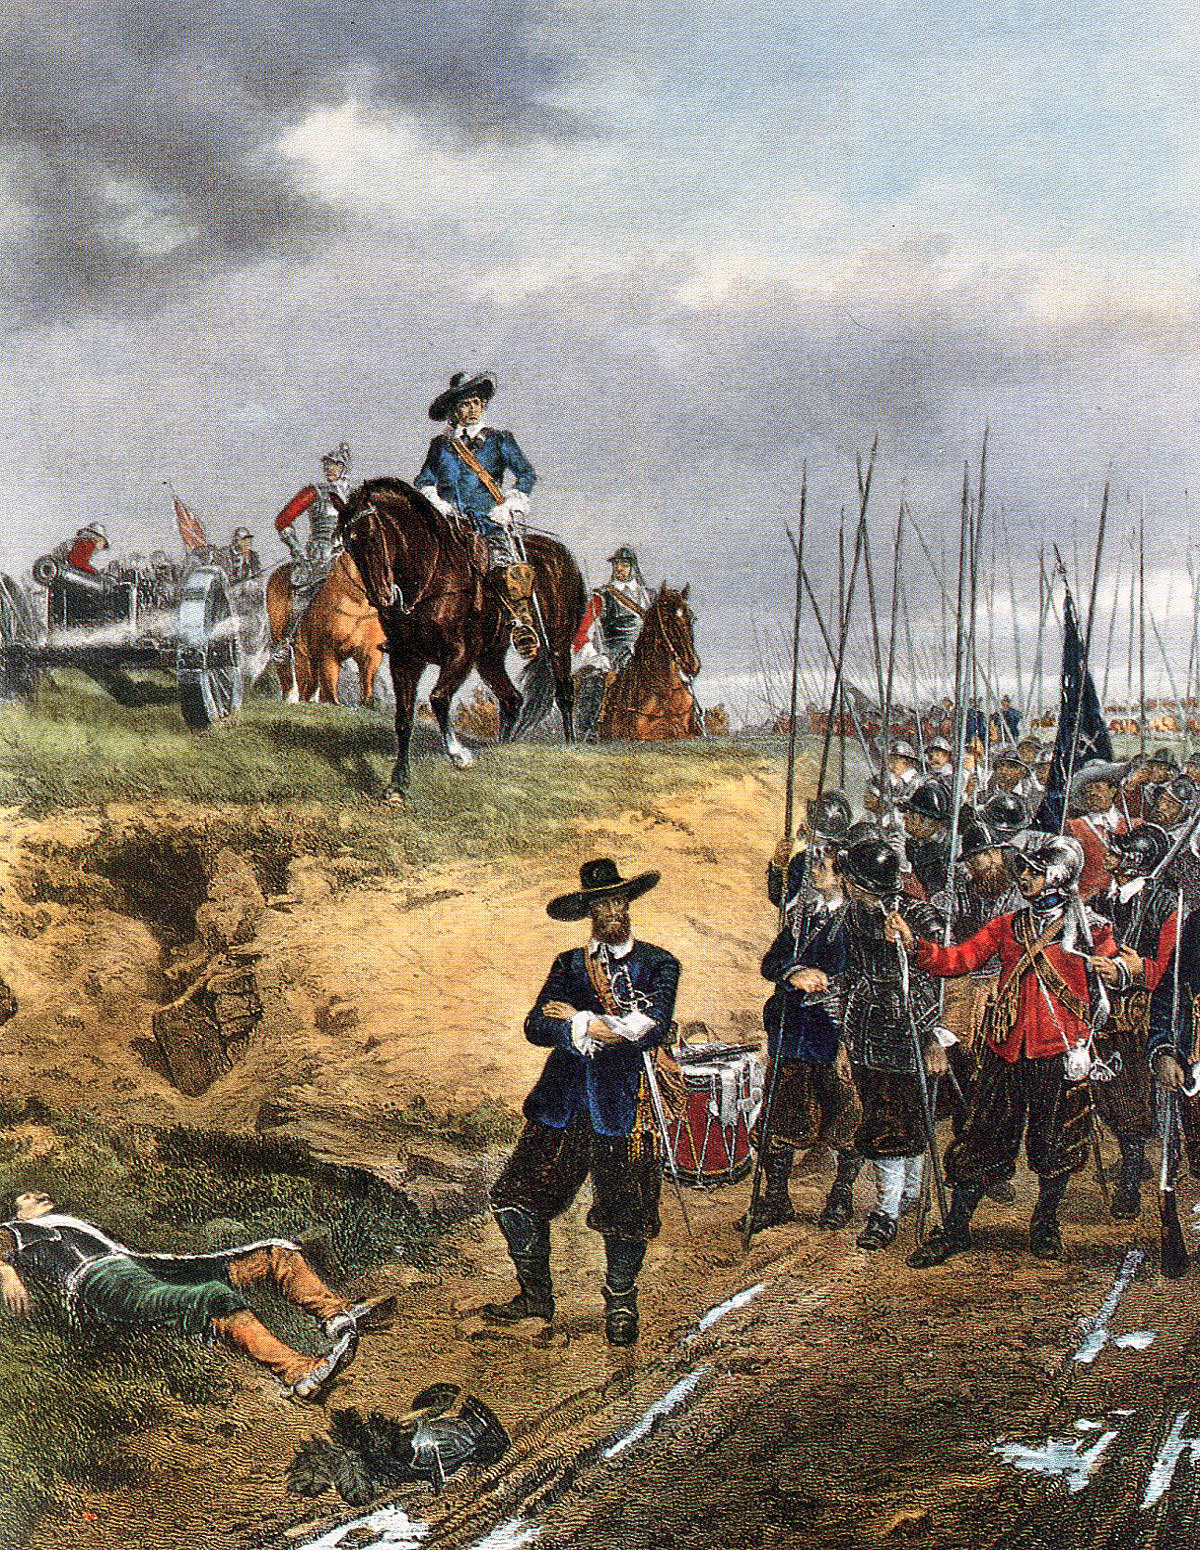 Oliver Cromwell and a regiment of Parliamentary Foot at the Battle of Marston Moor on 2nd July 1644 in the English Civil War: picture by Ernest Crofts